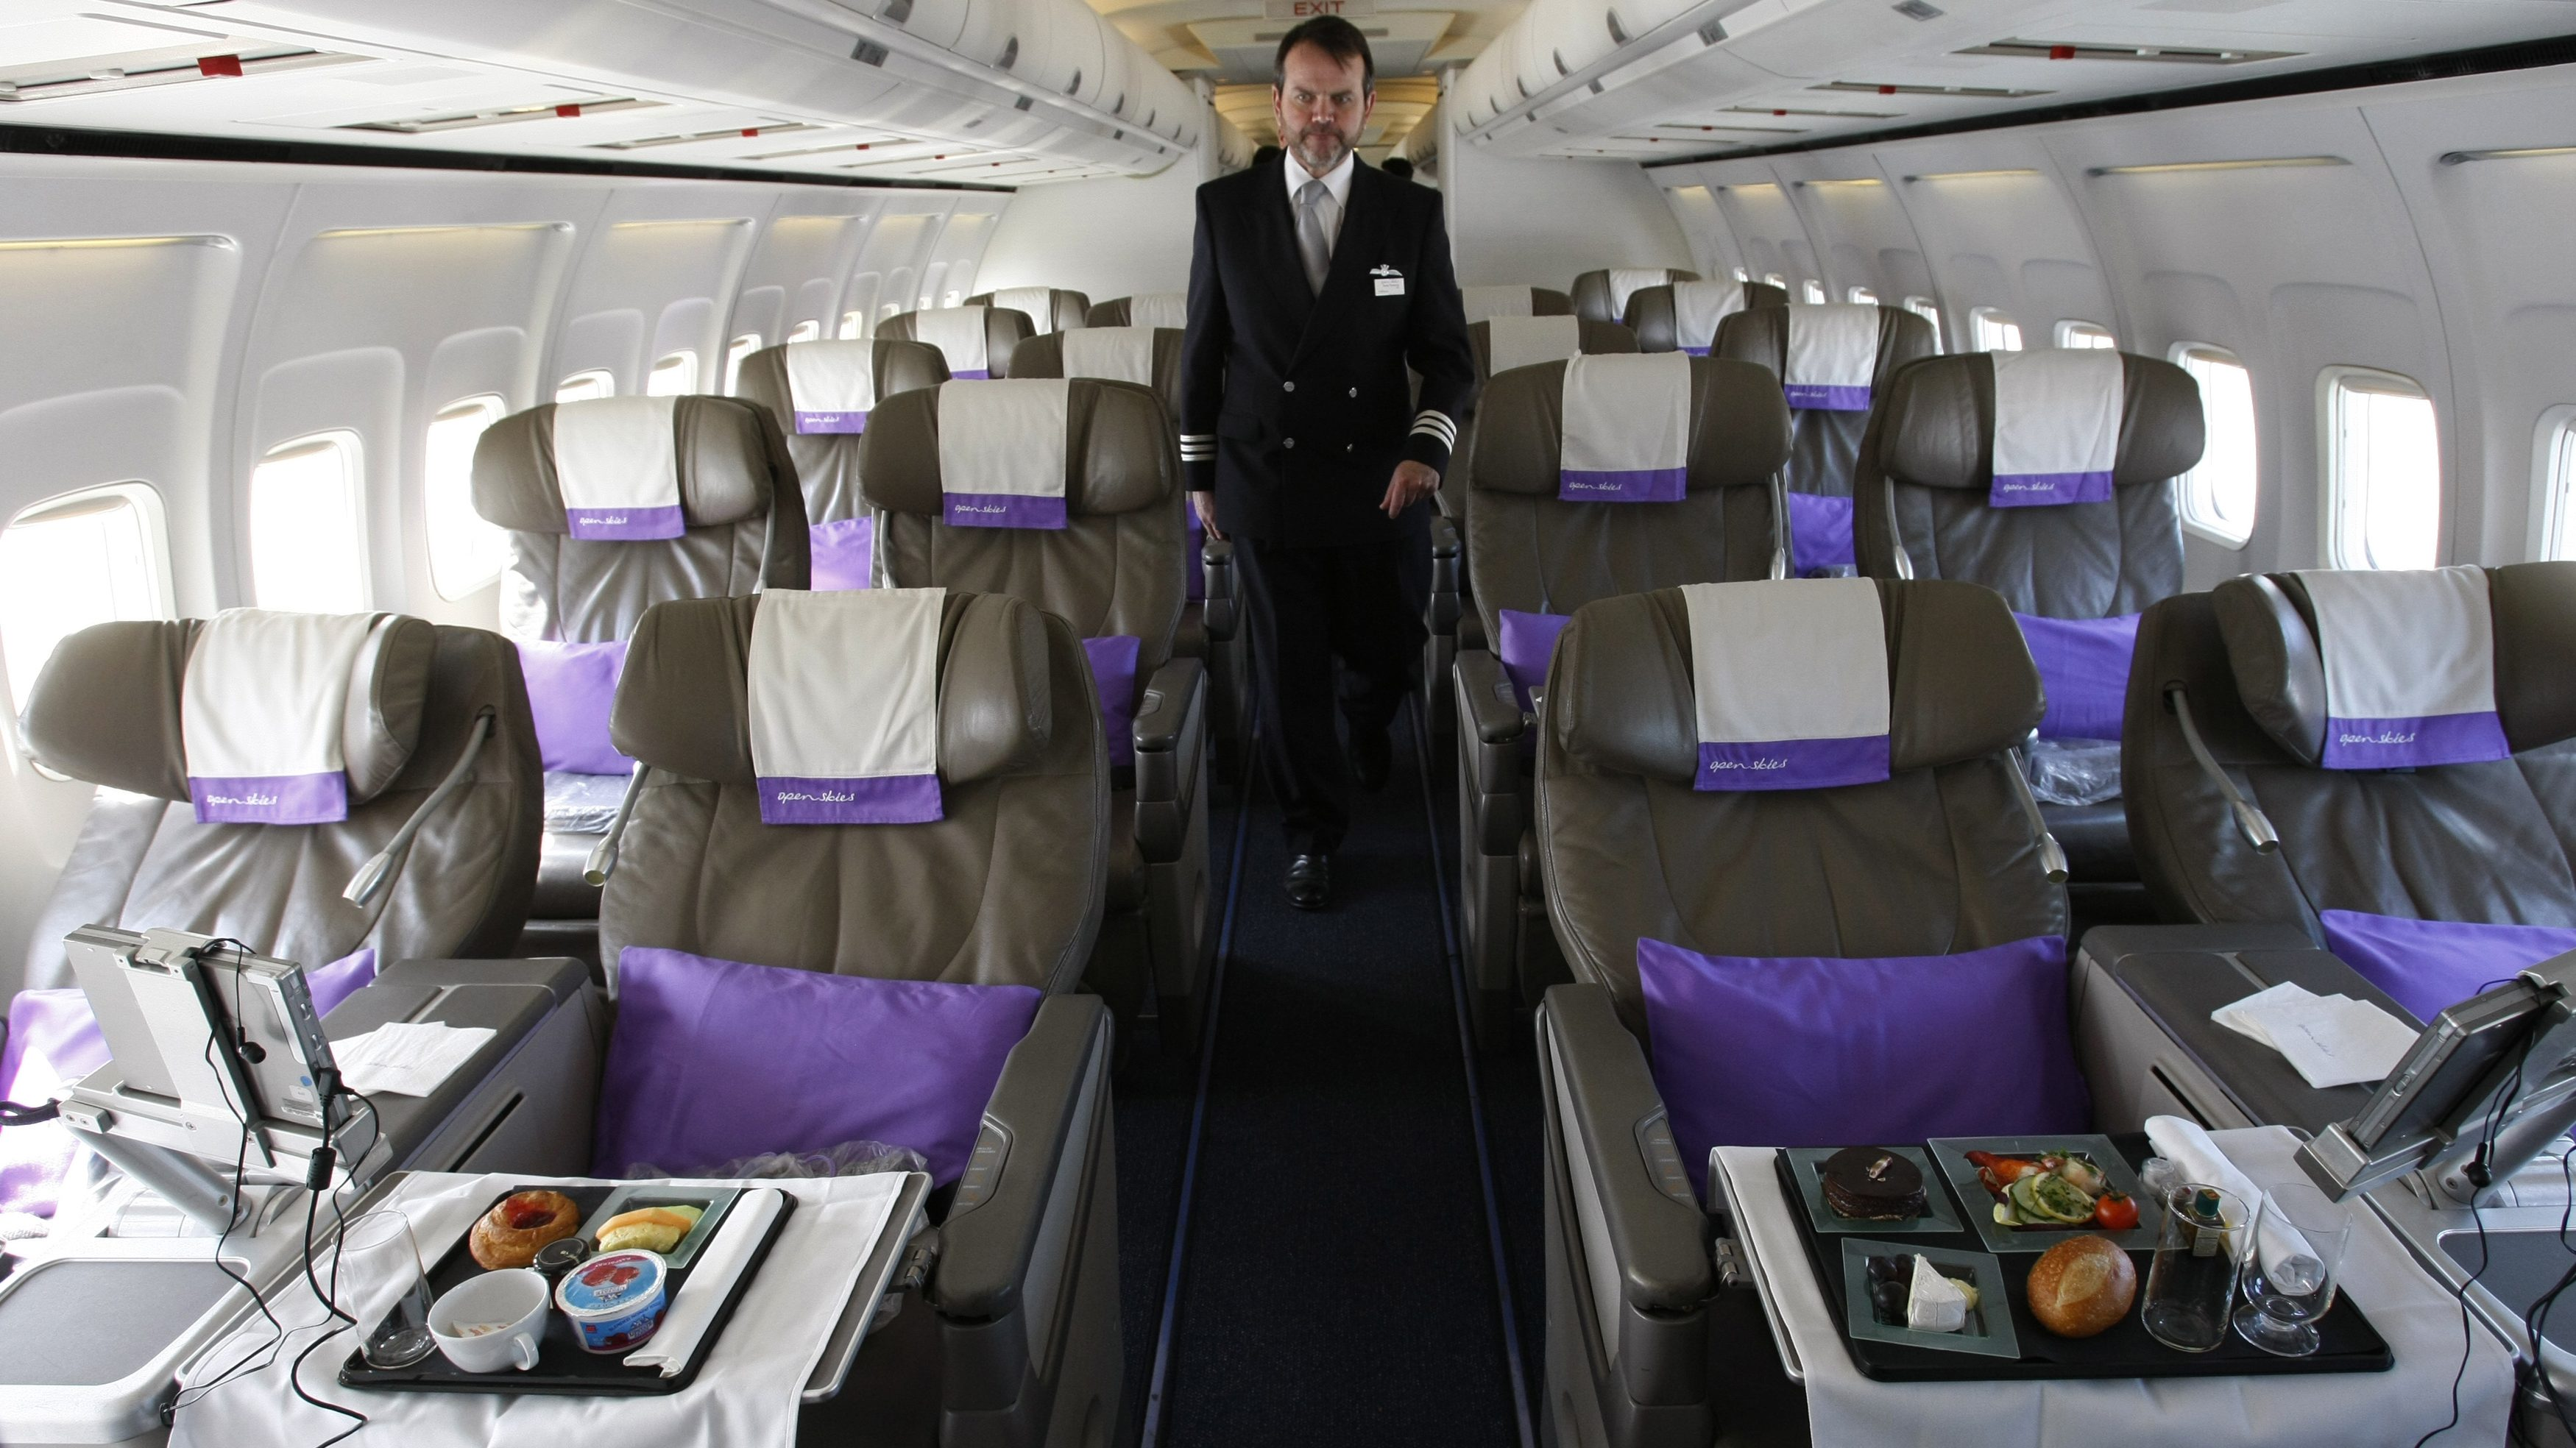 OpenSkies Airline Senior Flight Officer Andy Pomeroy walks down the aisle of one of its Boeing 757-200 jets that features 84 business class seats only cabins in Dulles Virginia